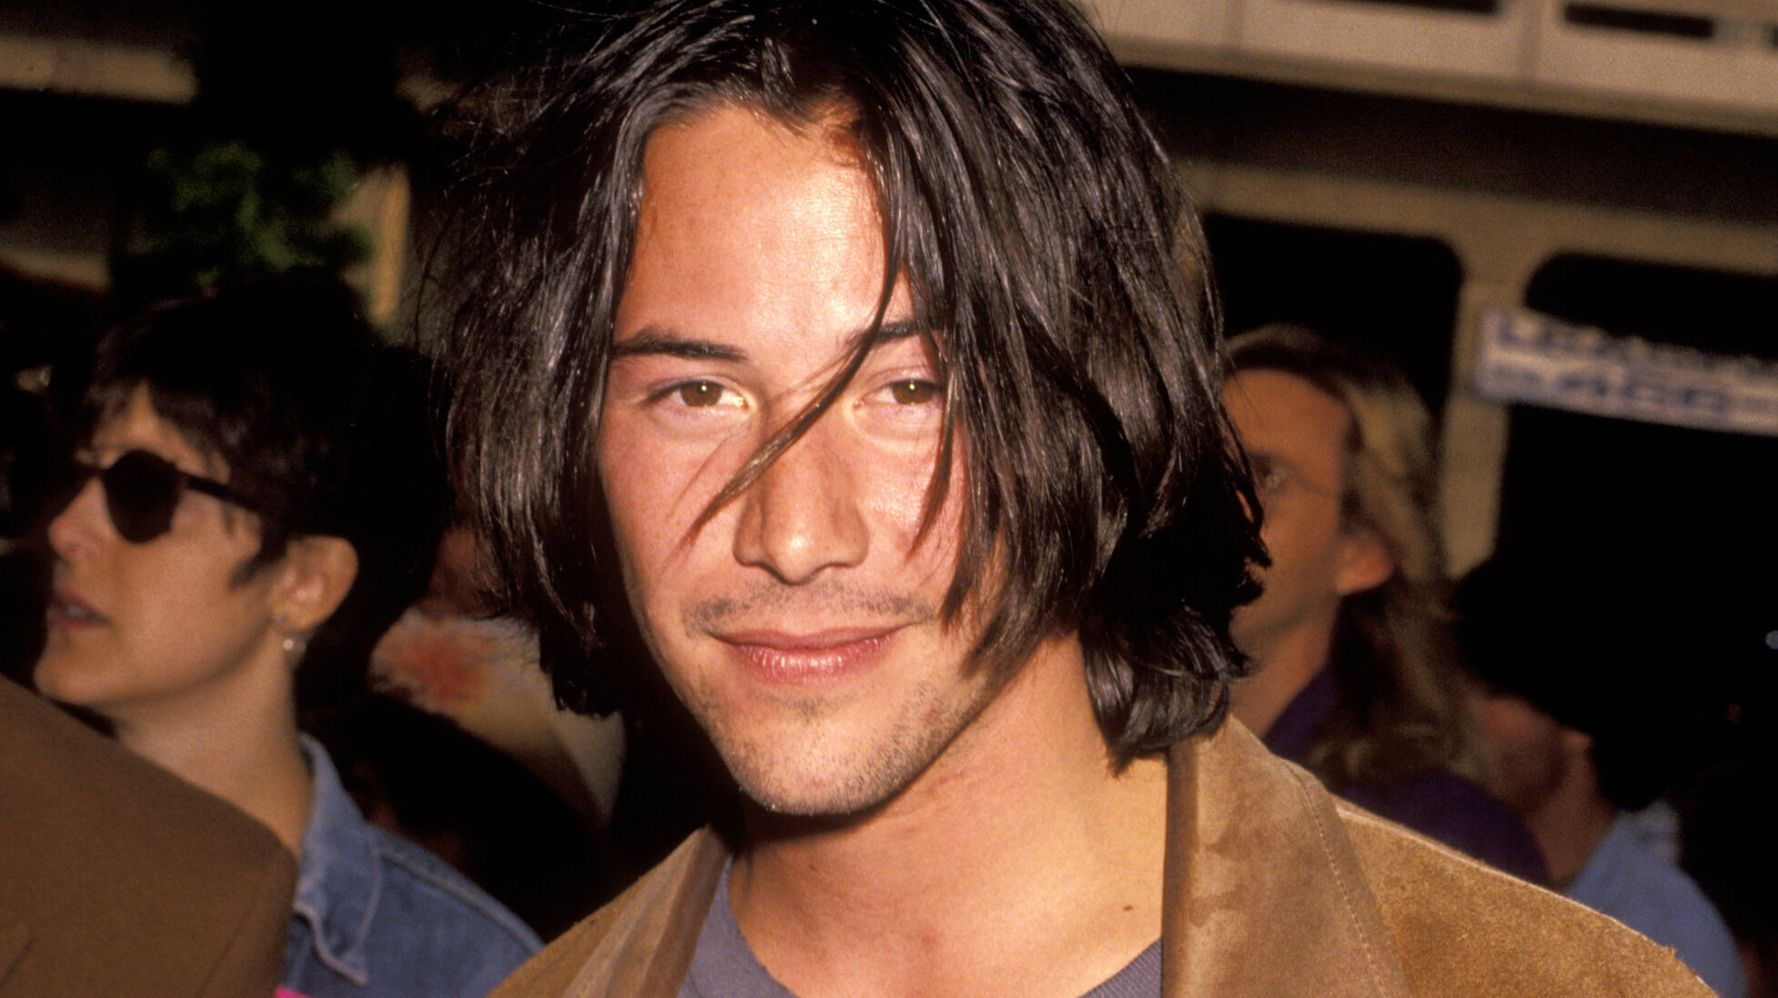 keanu reeves' style evolution, from grunge heartthrob to